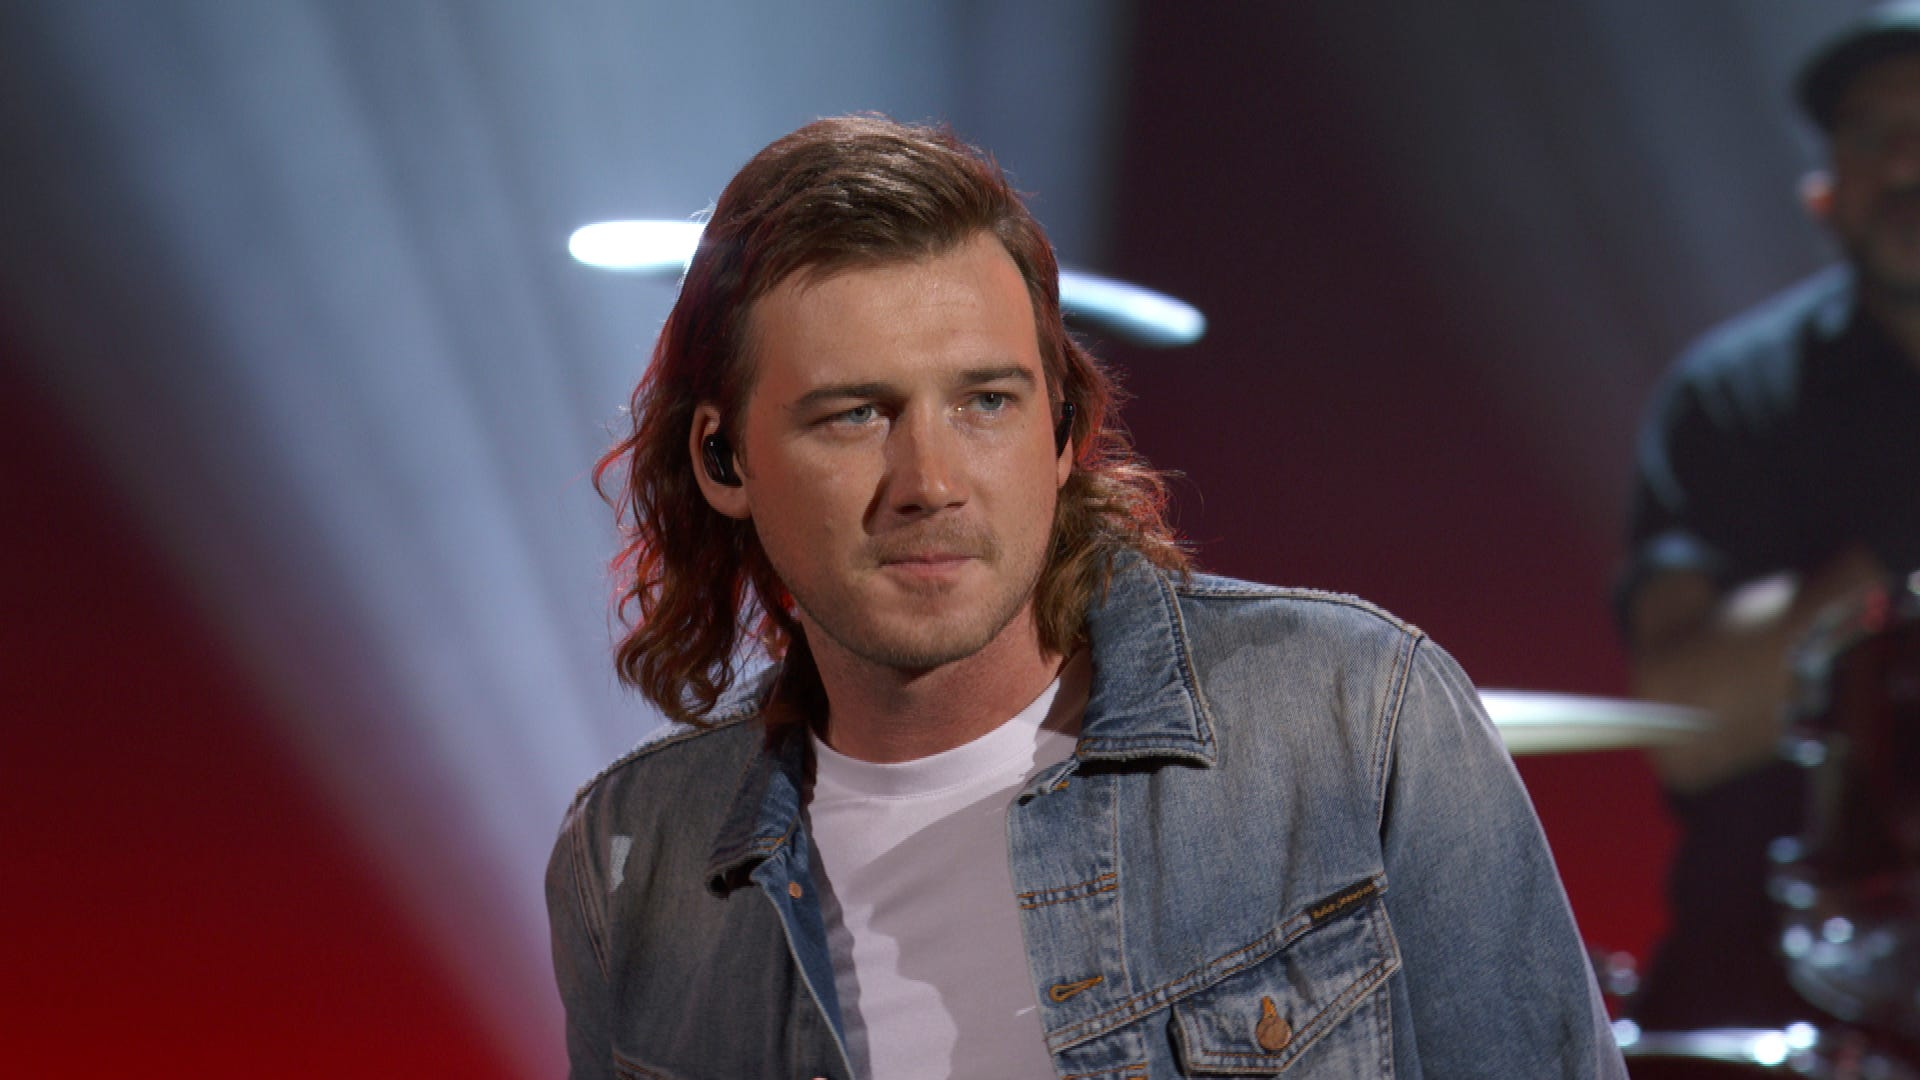 Morgan Wallen On Saturday Night Live Country Singer To Make Snl Debut